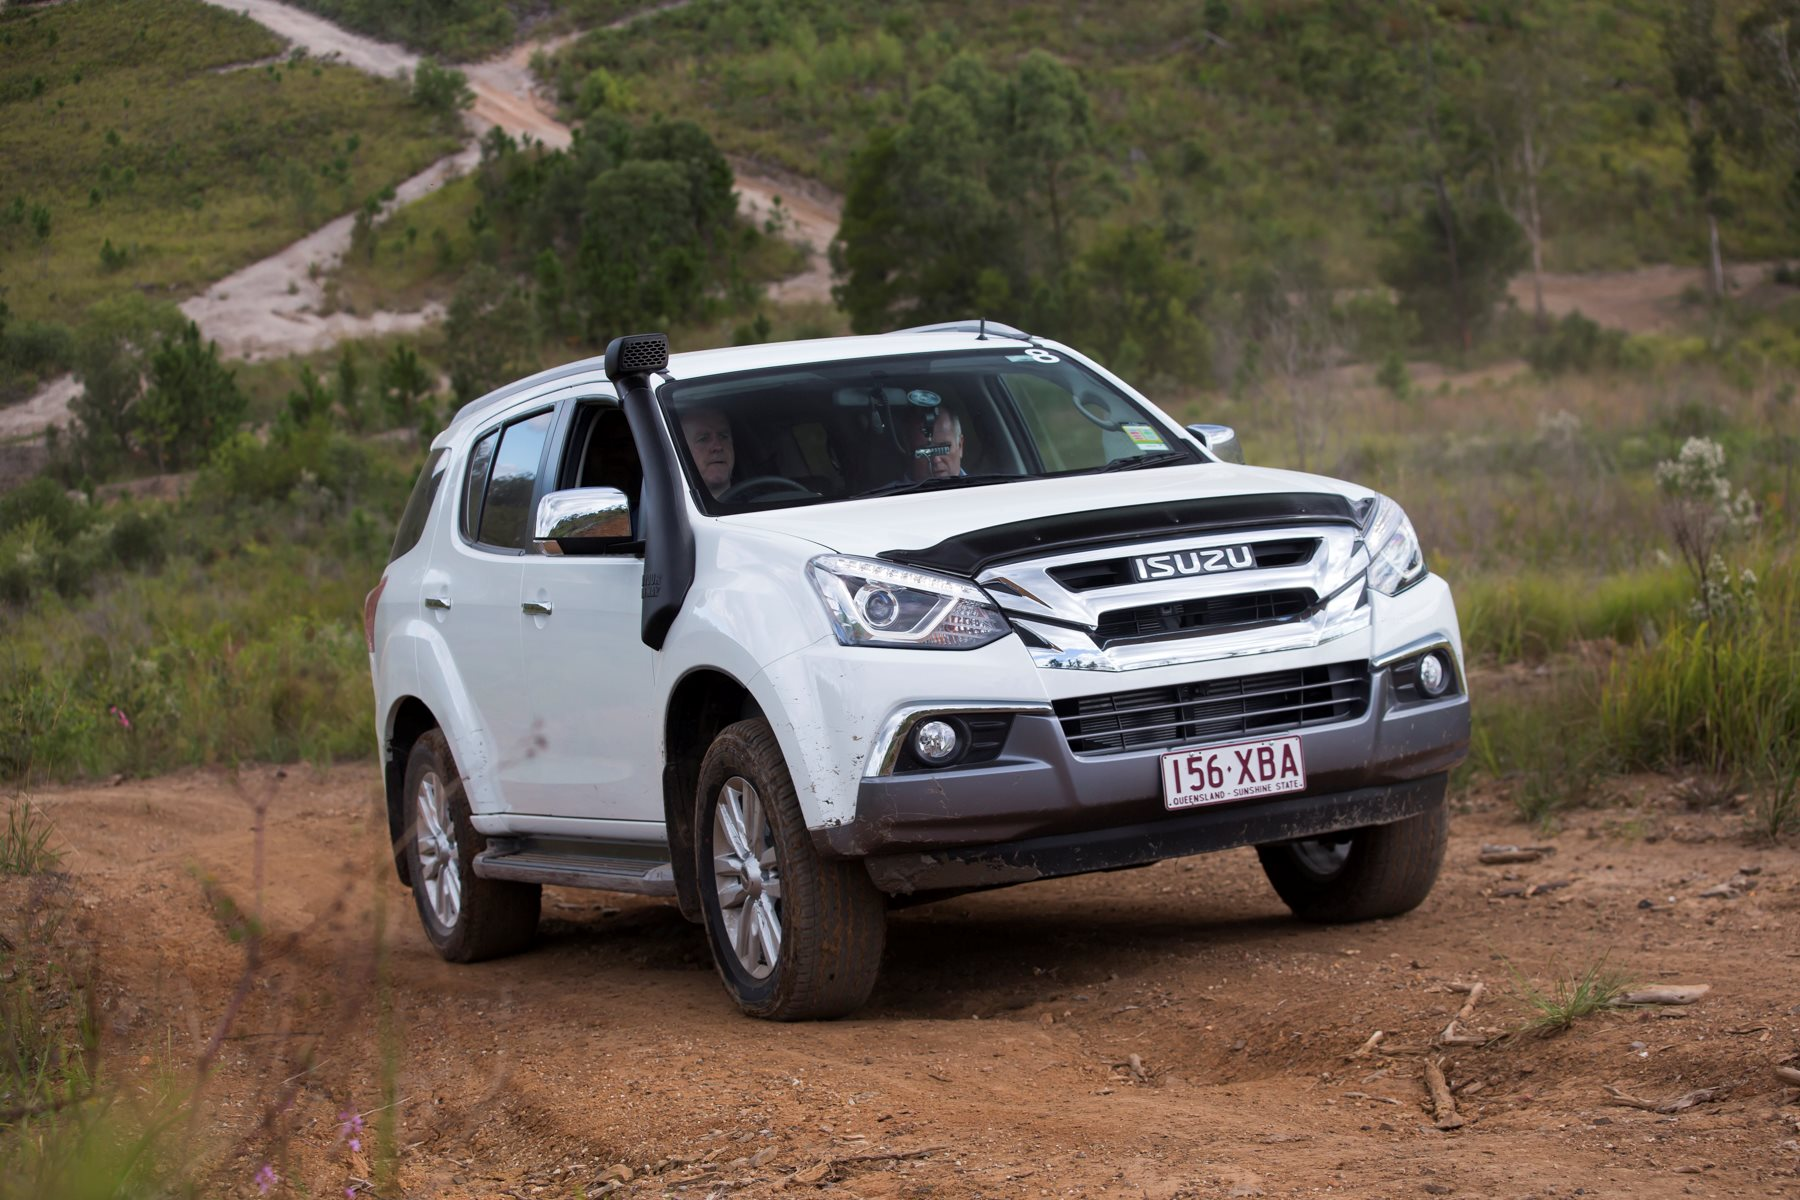 Isuzu MU-X off-road